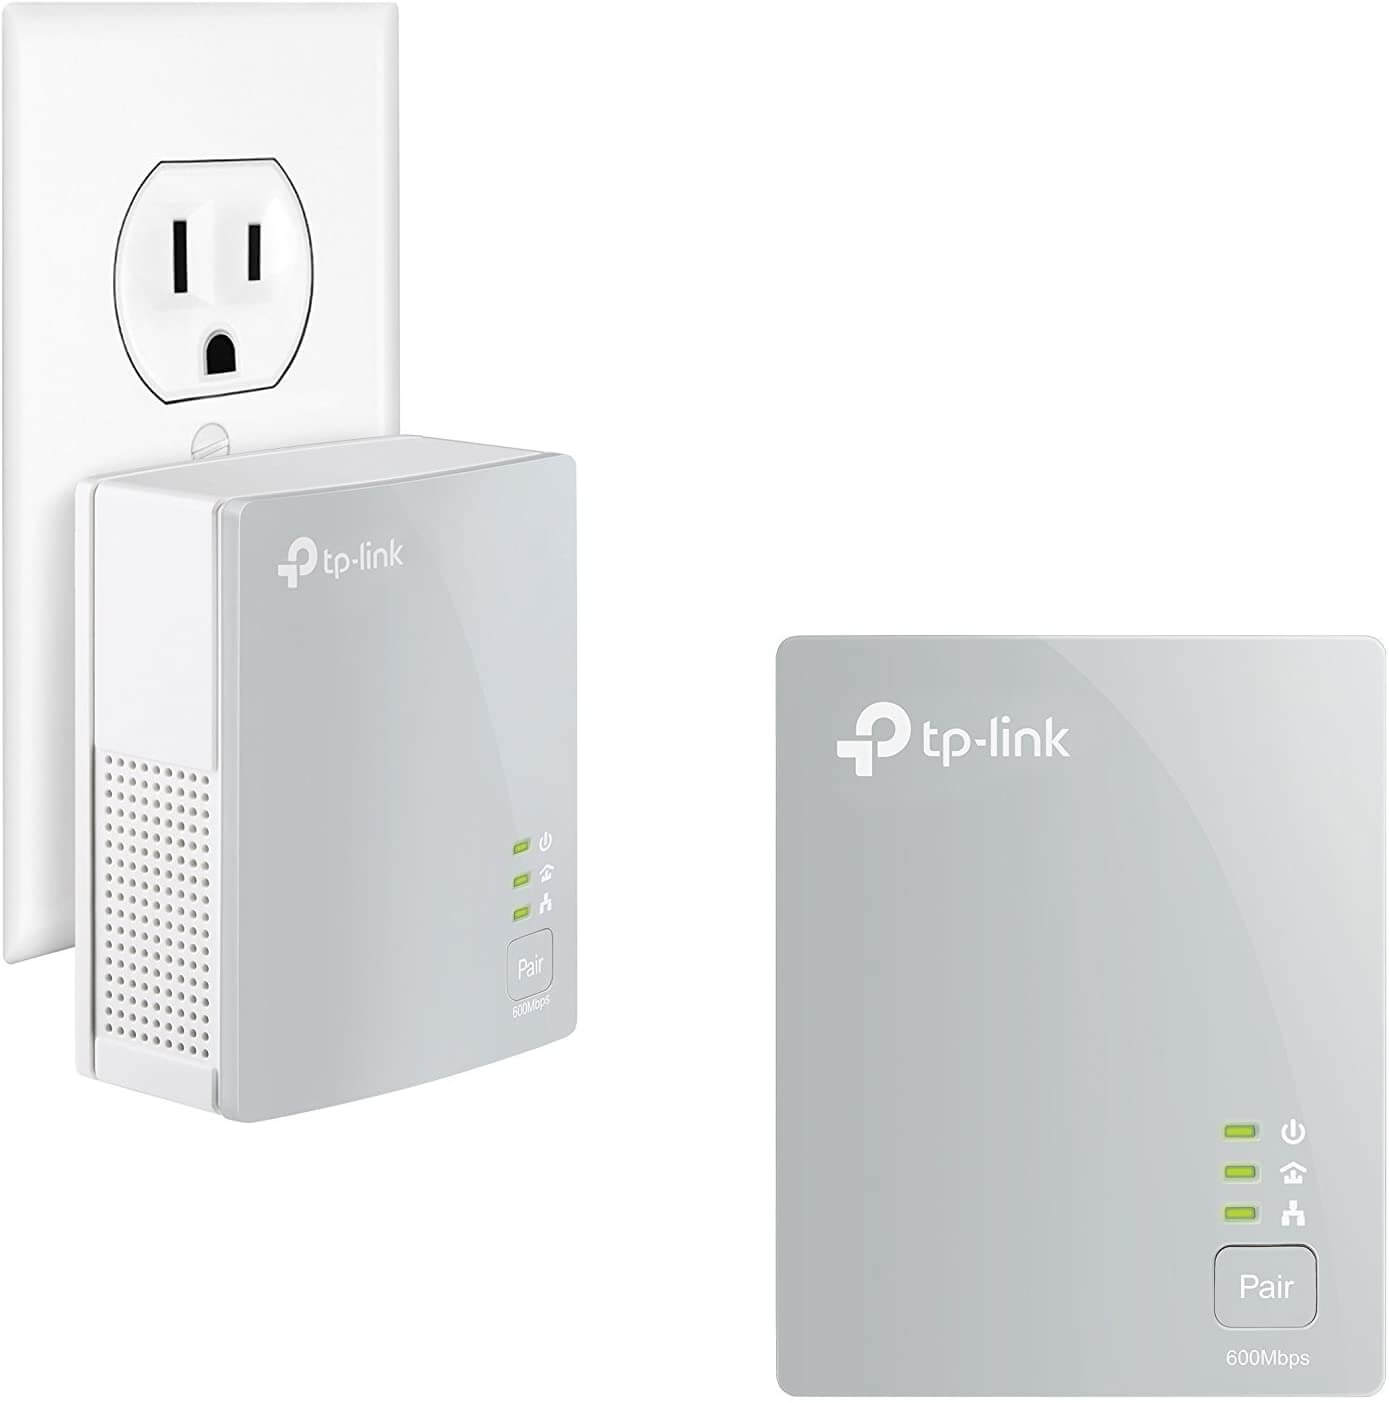 are TP-Link av500 and av600 compatible